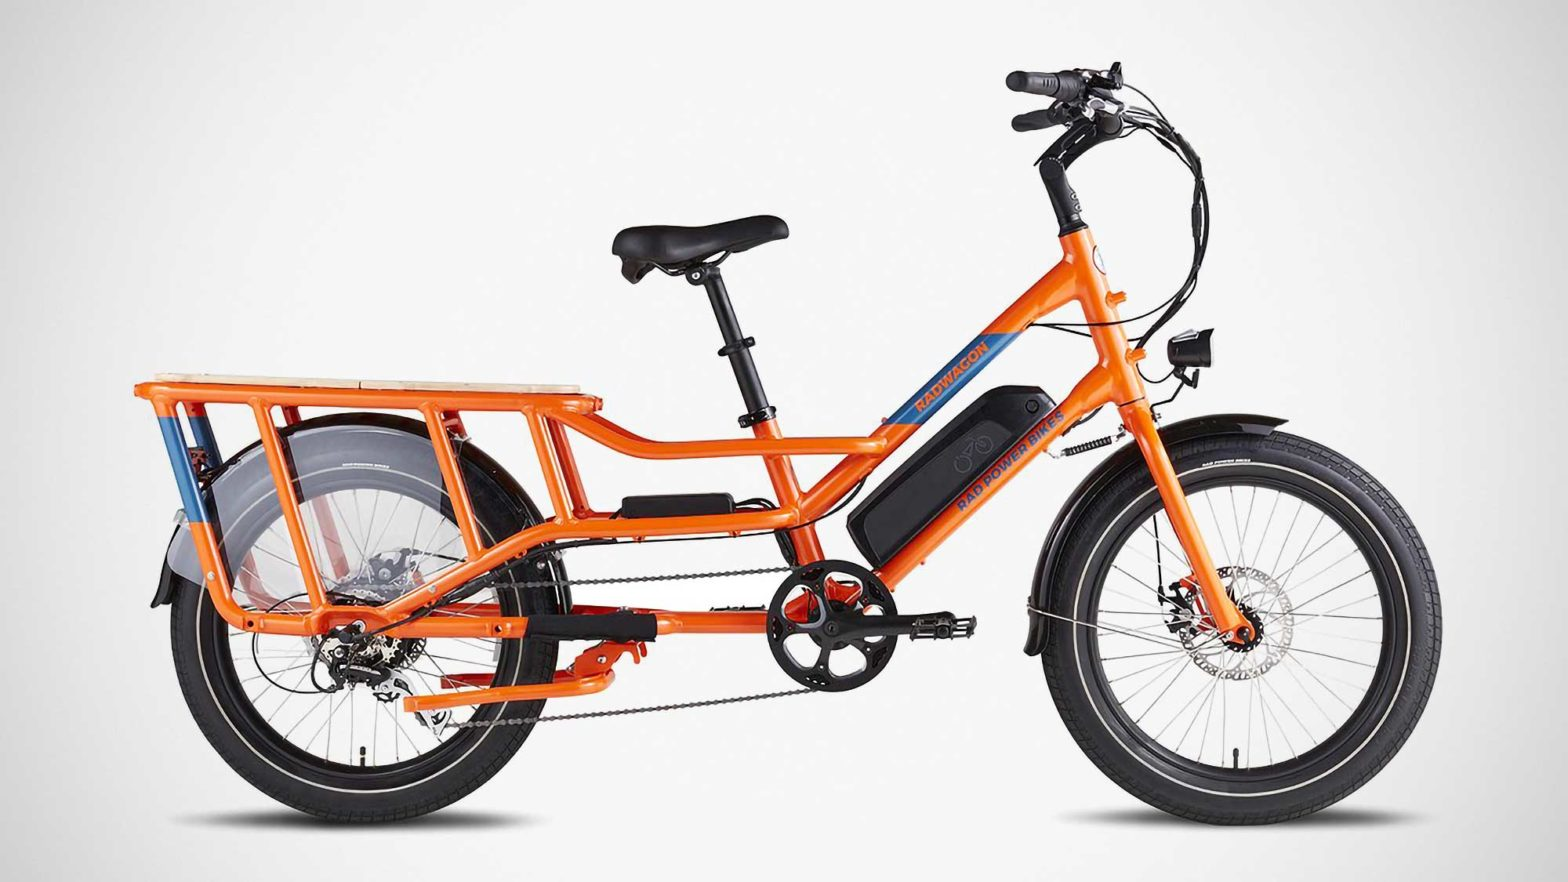 2020 RagWagon 4 Electric Cargo Bicycle